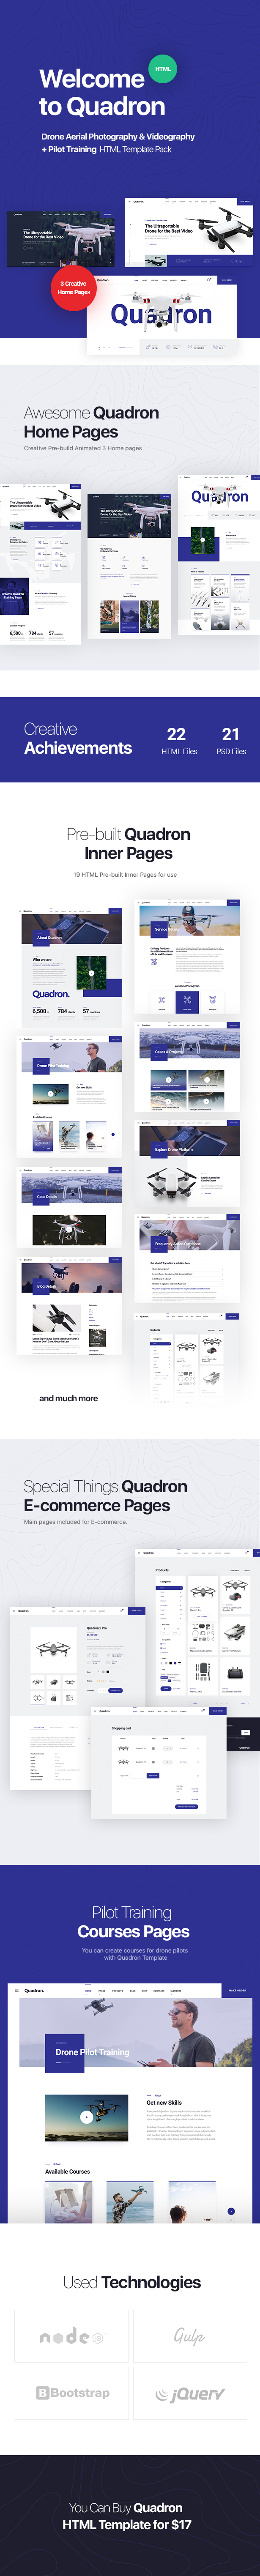 Quadron | Drone Aerial Photography & Videography + Pilot Training HTML Template Pack - 5